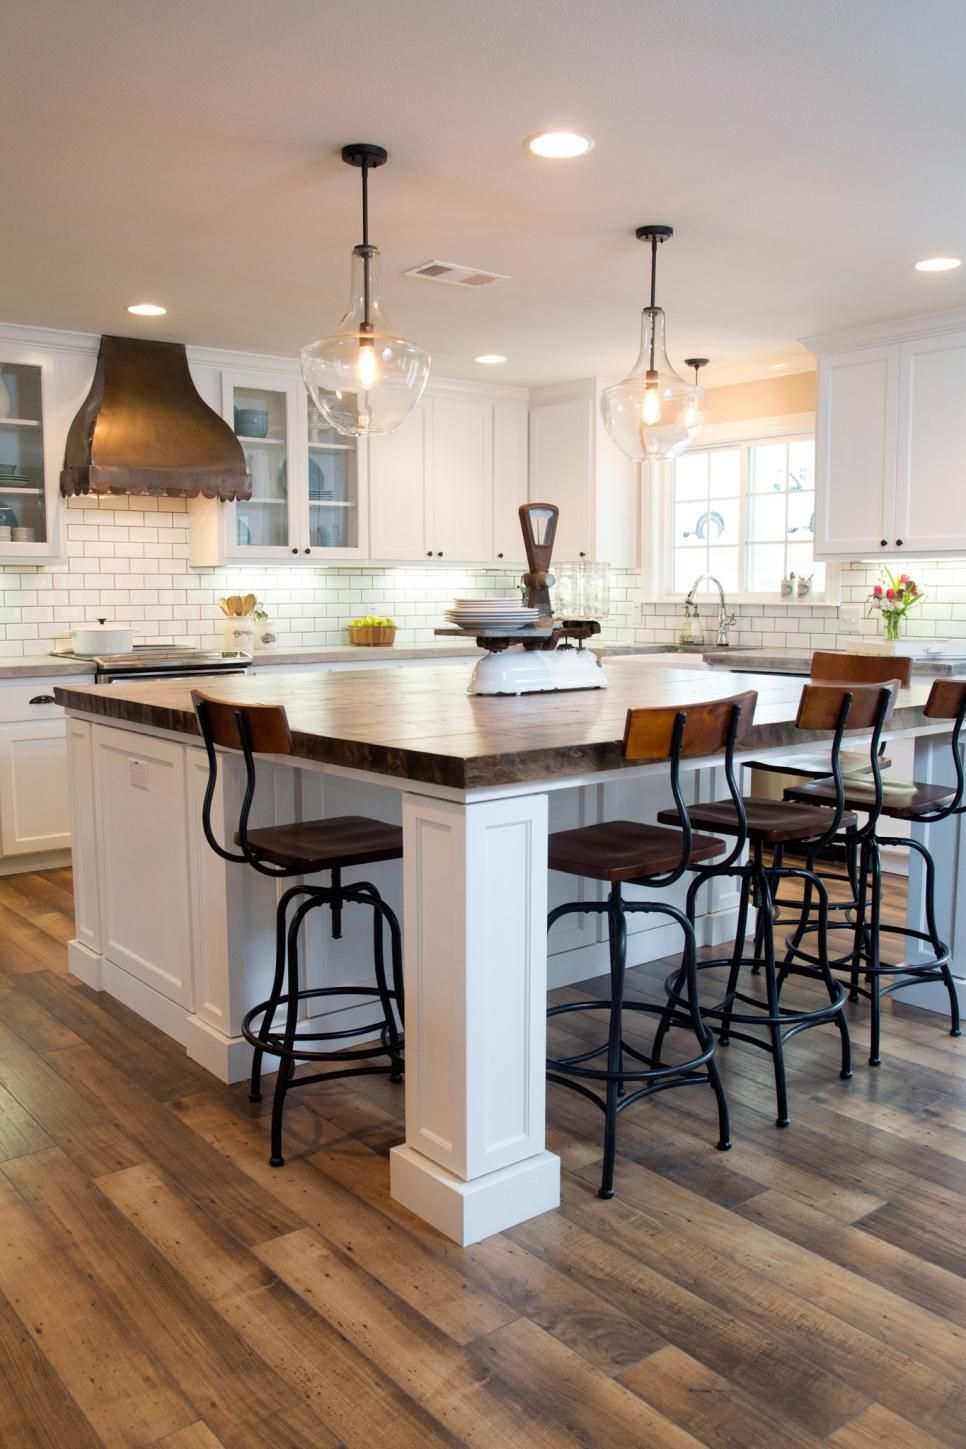 two pendant lights illuminate a new kitchen island with a